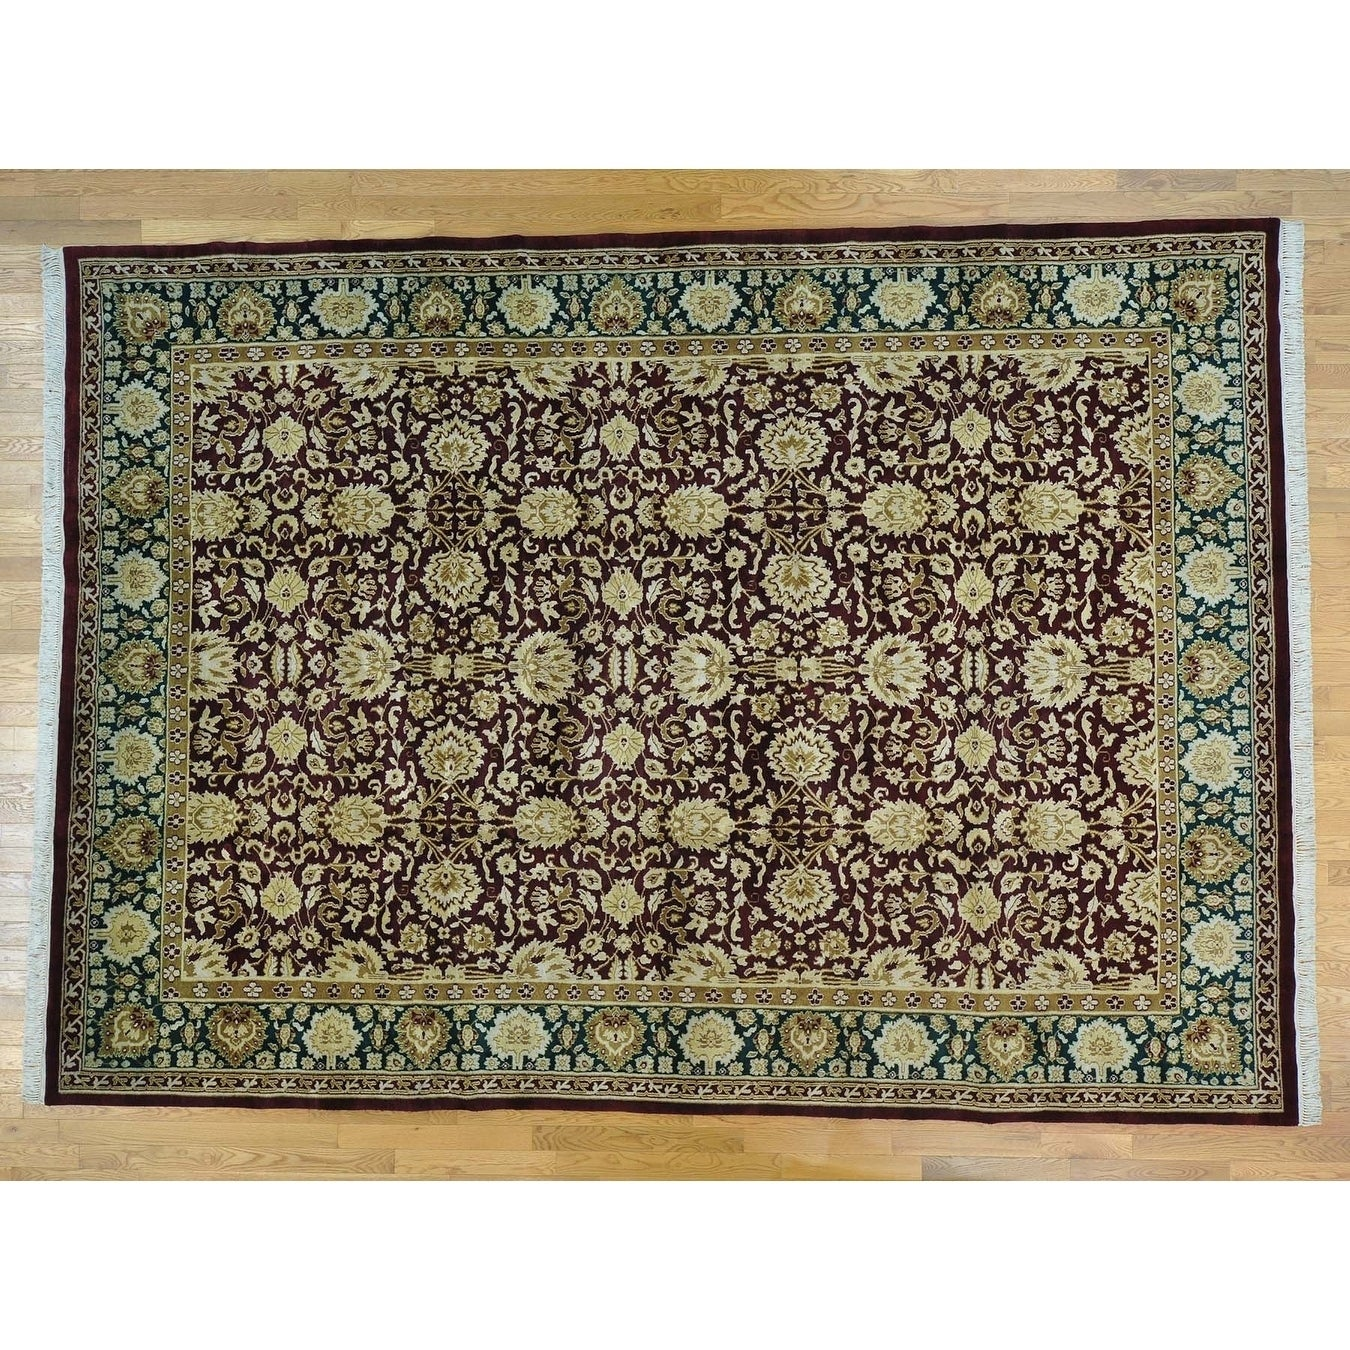 Hand Knotted Red Clearance with Wool Oriental Rug - 97 x 137